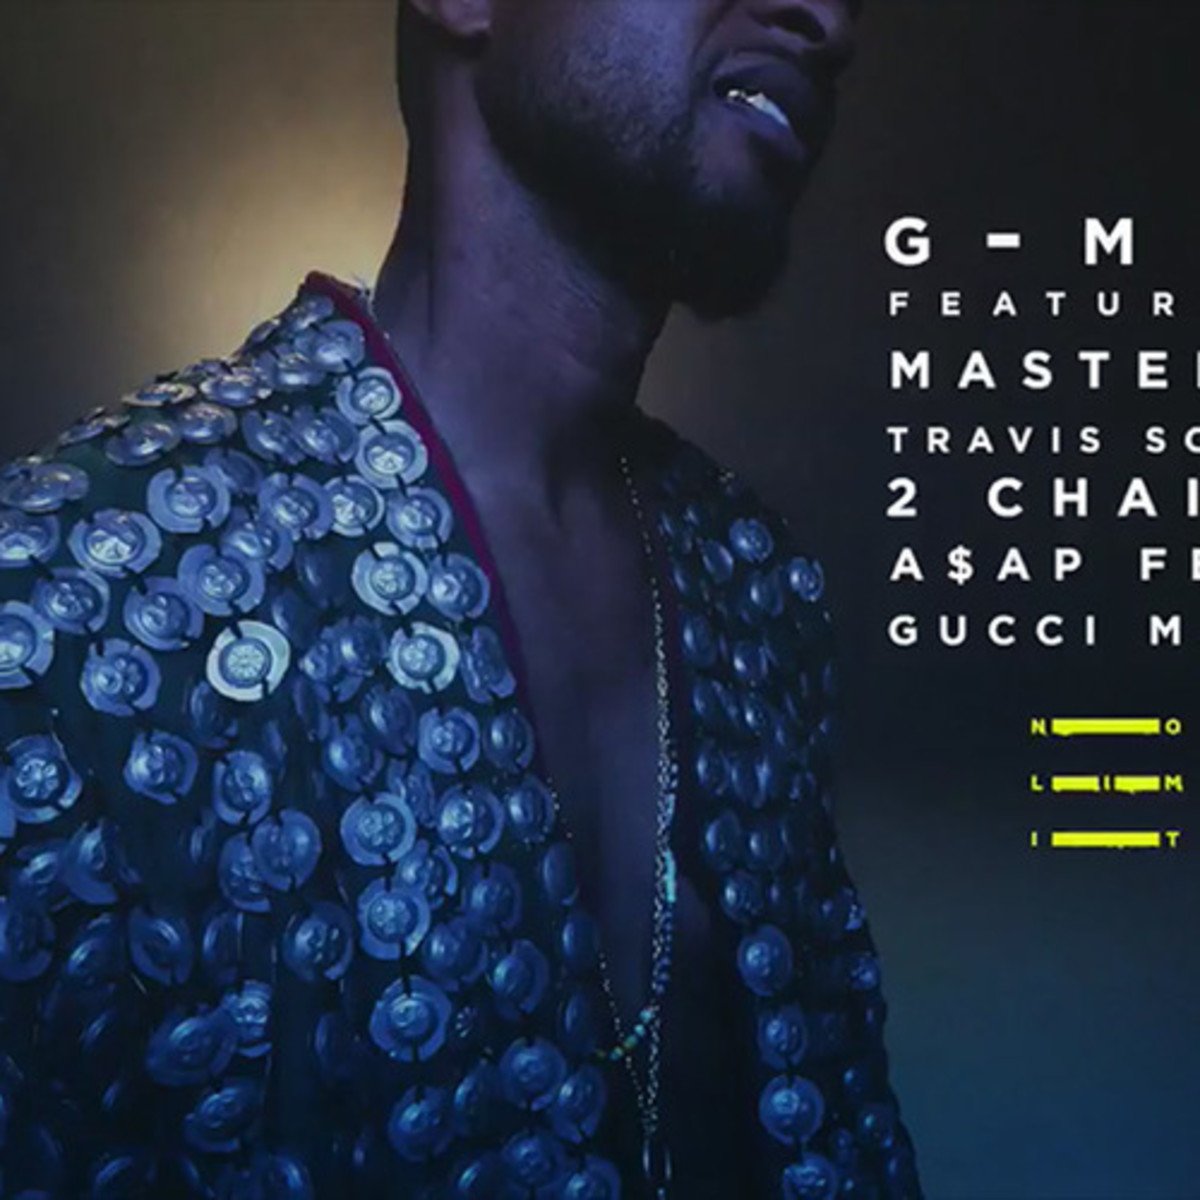 Usher - No Limit (G-Mix) ft  Master P, 2 Chainz, A$AP Ferg